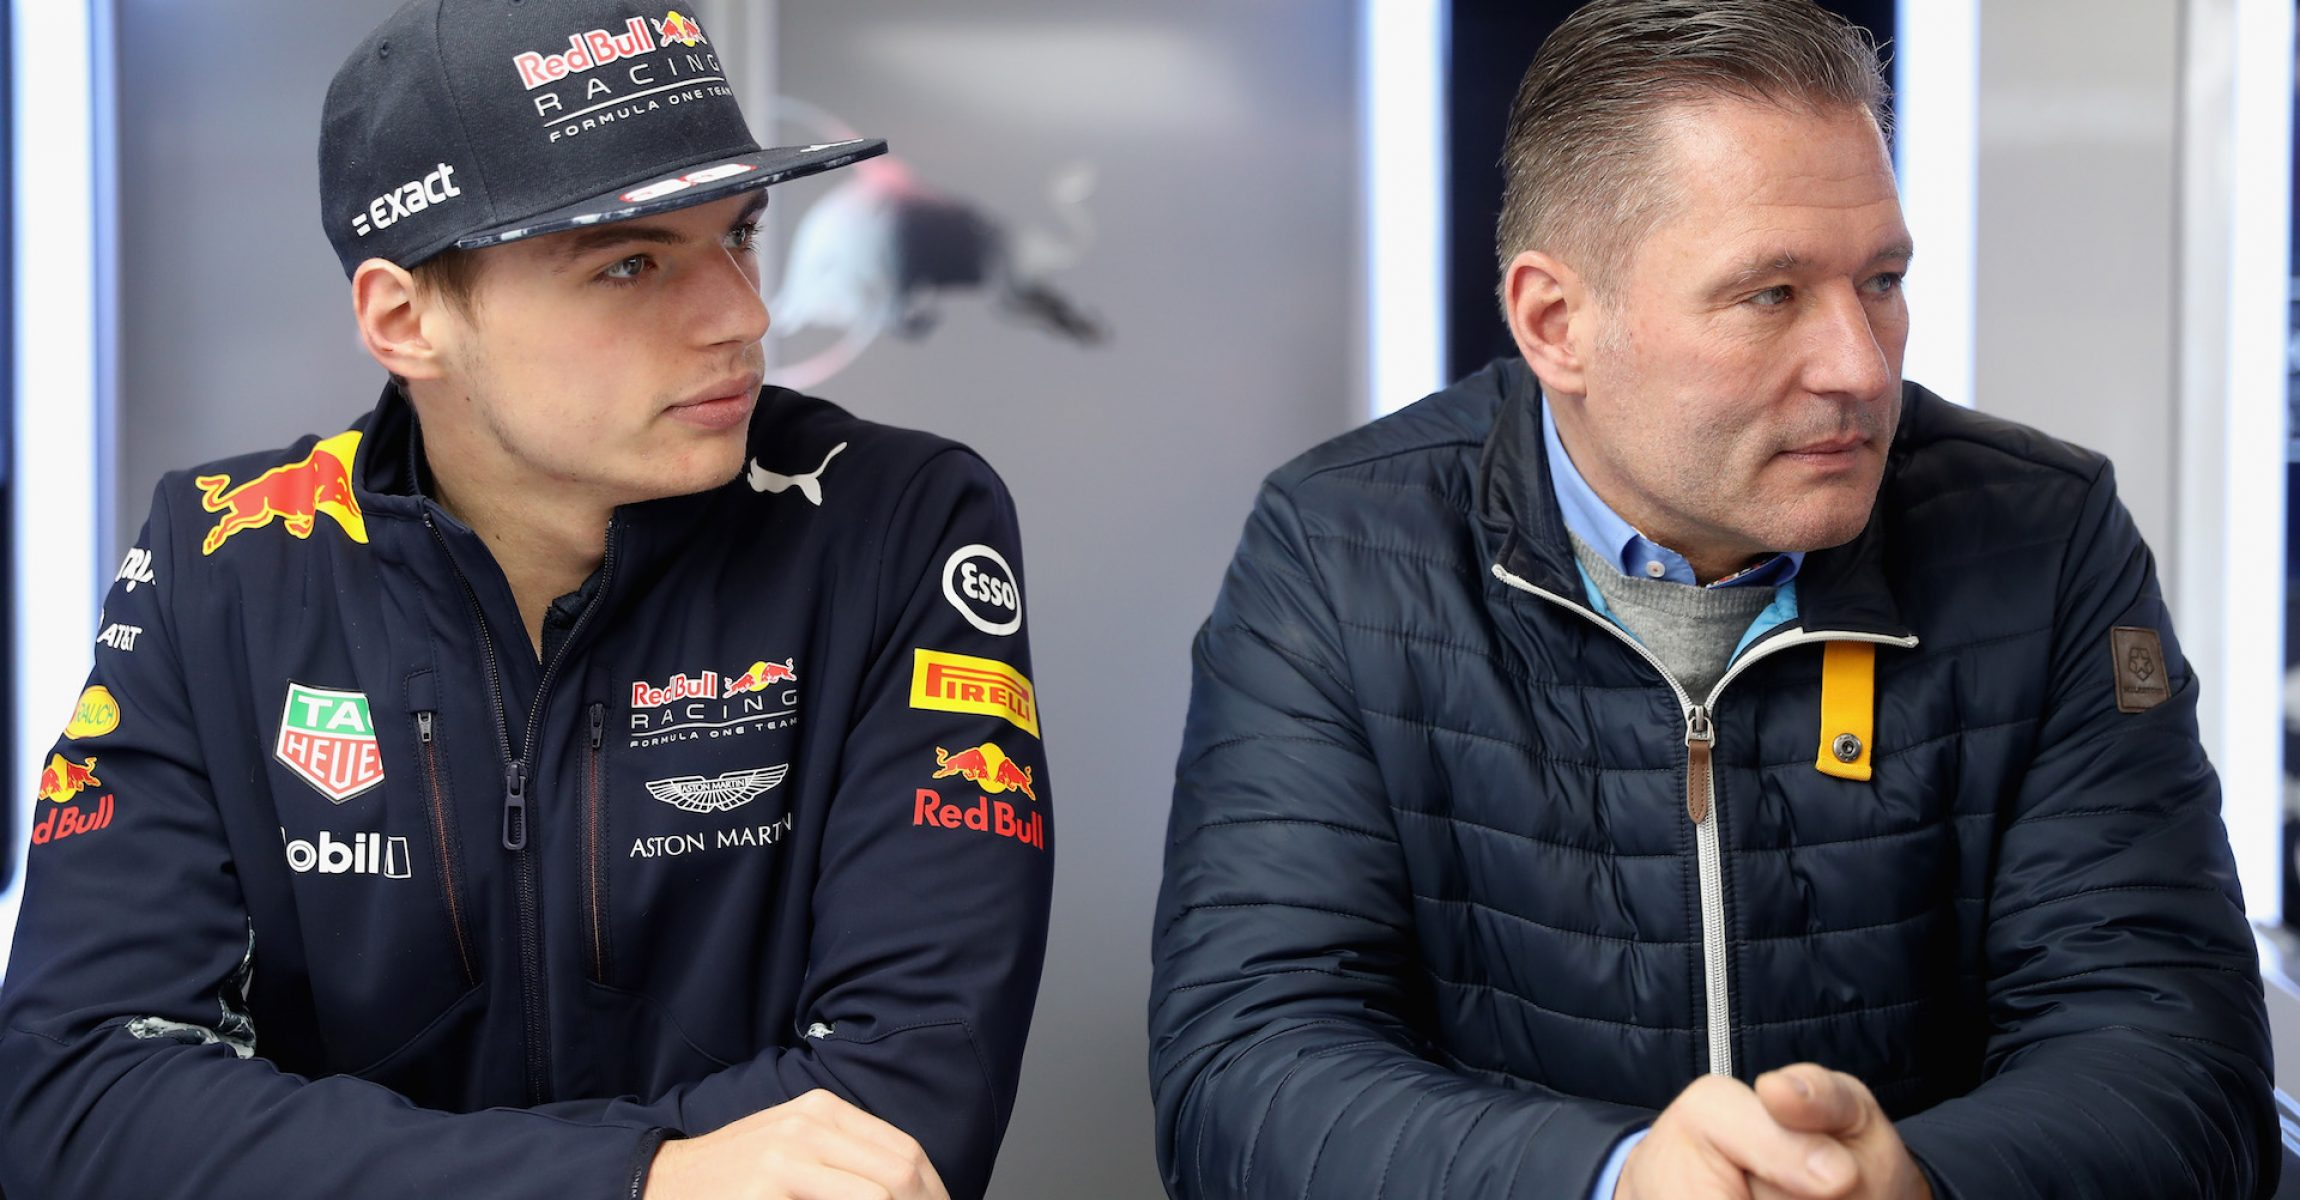 MONTMELO, SPAIN - FEBRUARY 27:  Max Verstappen of Netherlands and Red Bull Racing looks on in the garage with father Jos Verstappen during day one of Formula One winter testing at Circuit de Catalunya on February 27, 2017 in Montmelo, Spain.  (Photo by Mark Thompson/Getty Images)